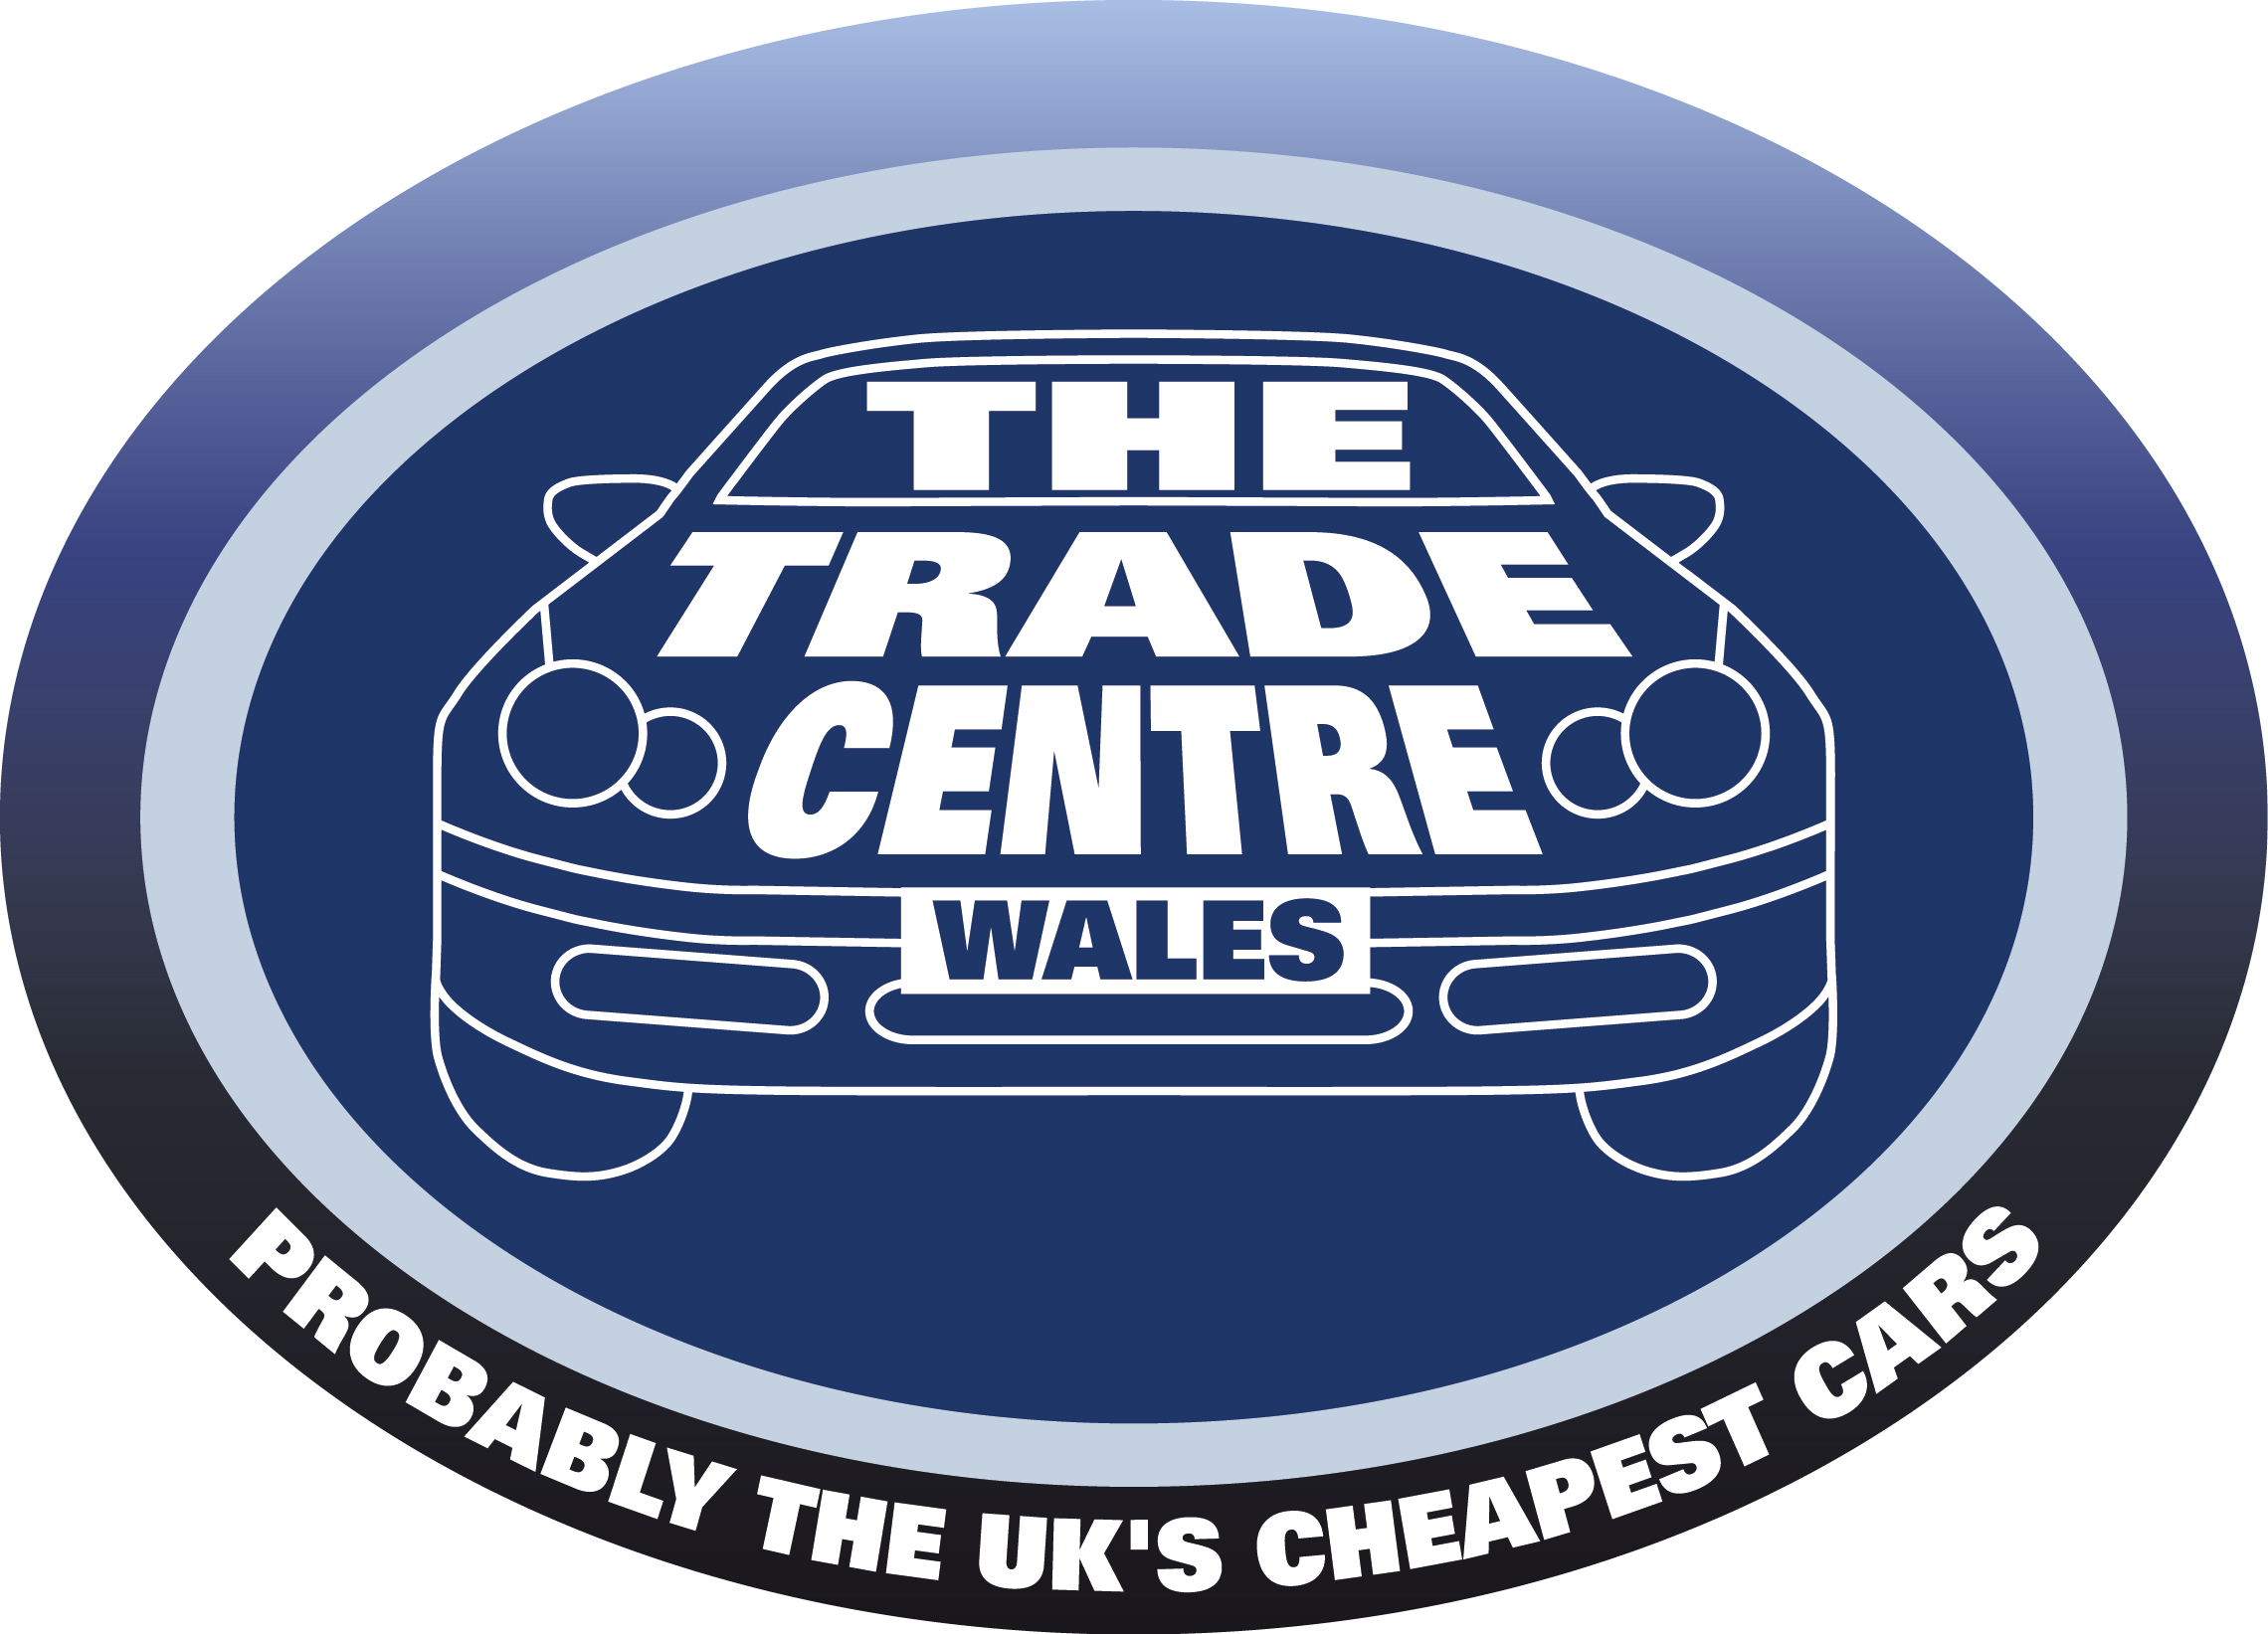 Read The Trade Centre Wales Reviews